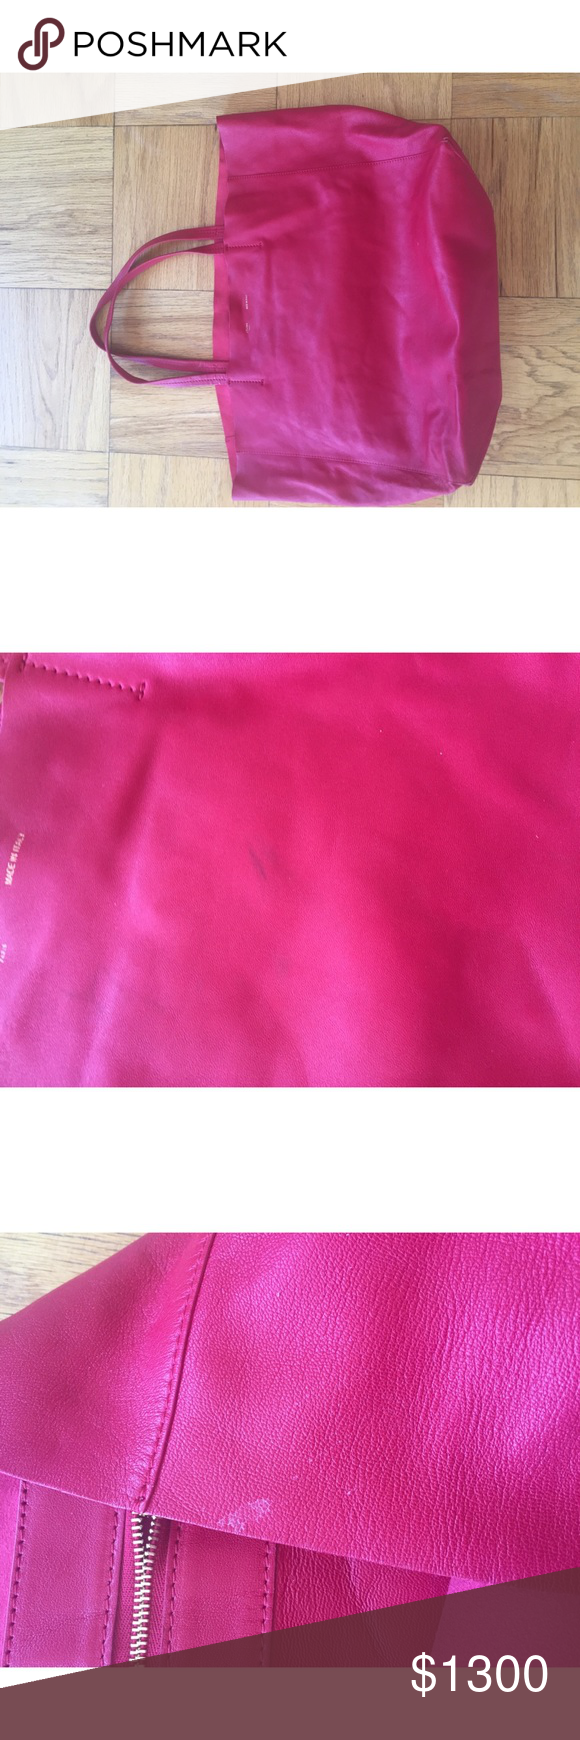 """Celine Thin Red Leather Tote Bag This bag is in 5/10 condition. There are signs of wear. There are dark marks on the outside of the bag. There is a water stain on the inside. The inside is suede material. There are white marks on the inside. Willing to negotiate a decent price. This bag measures about 22"""" H from the the strap. And measures about 19"""" W. Celine Bags Totes"""